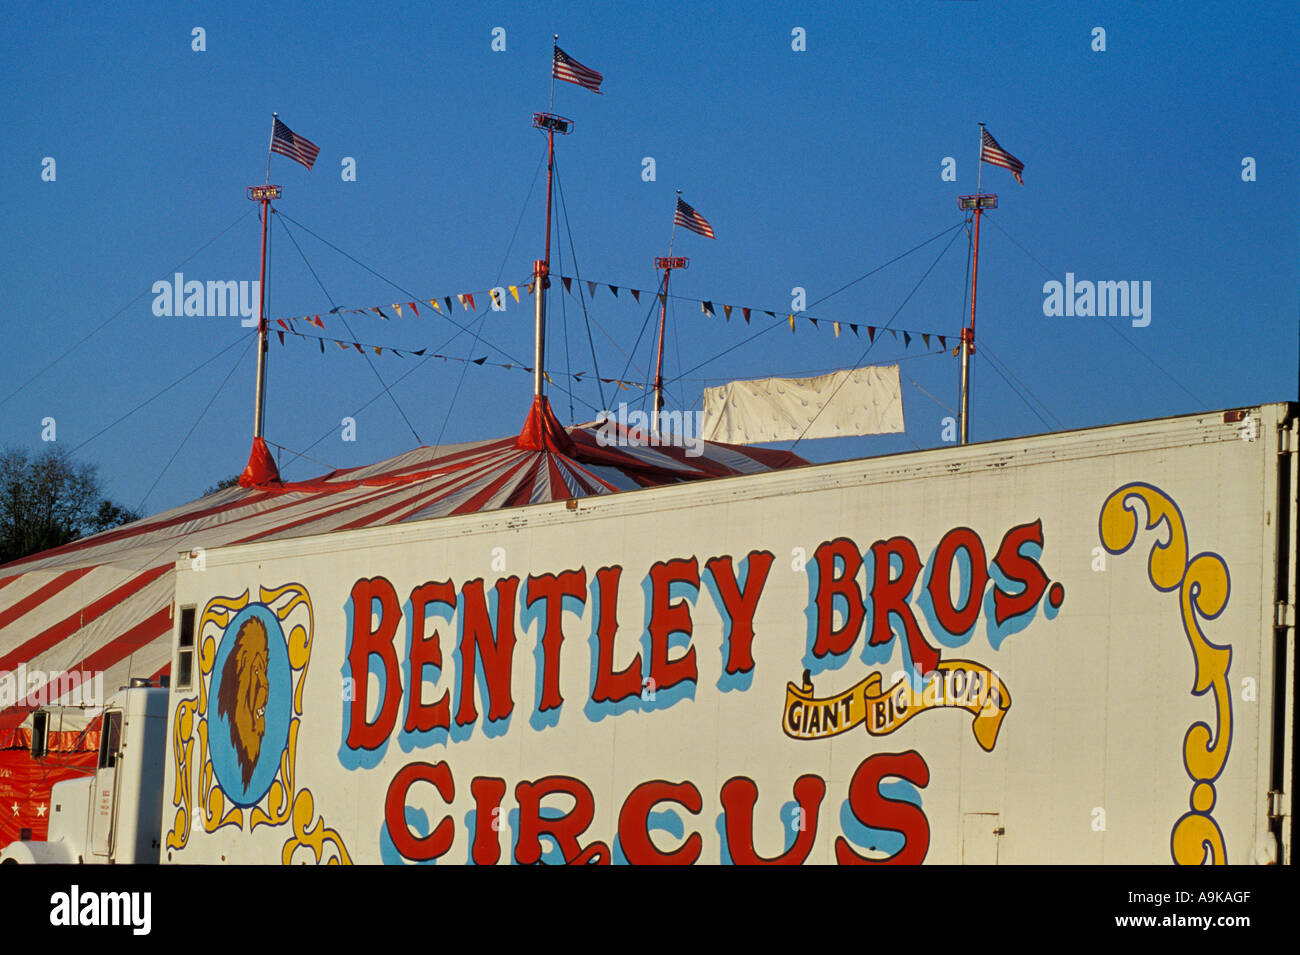 Brothers circus big top tent truck wagon sign American US United States & Bentley Bros. Brothers circus big top tent truck wagon sign ...